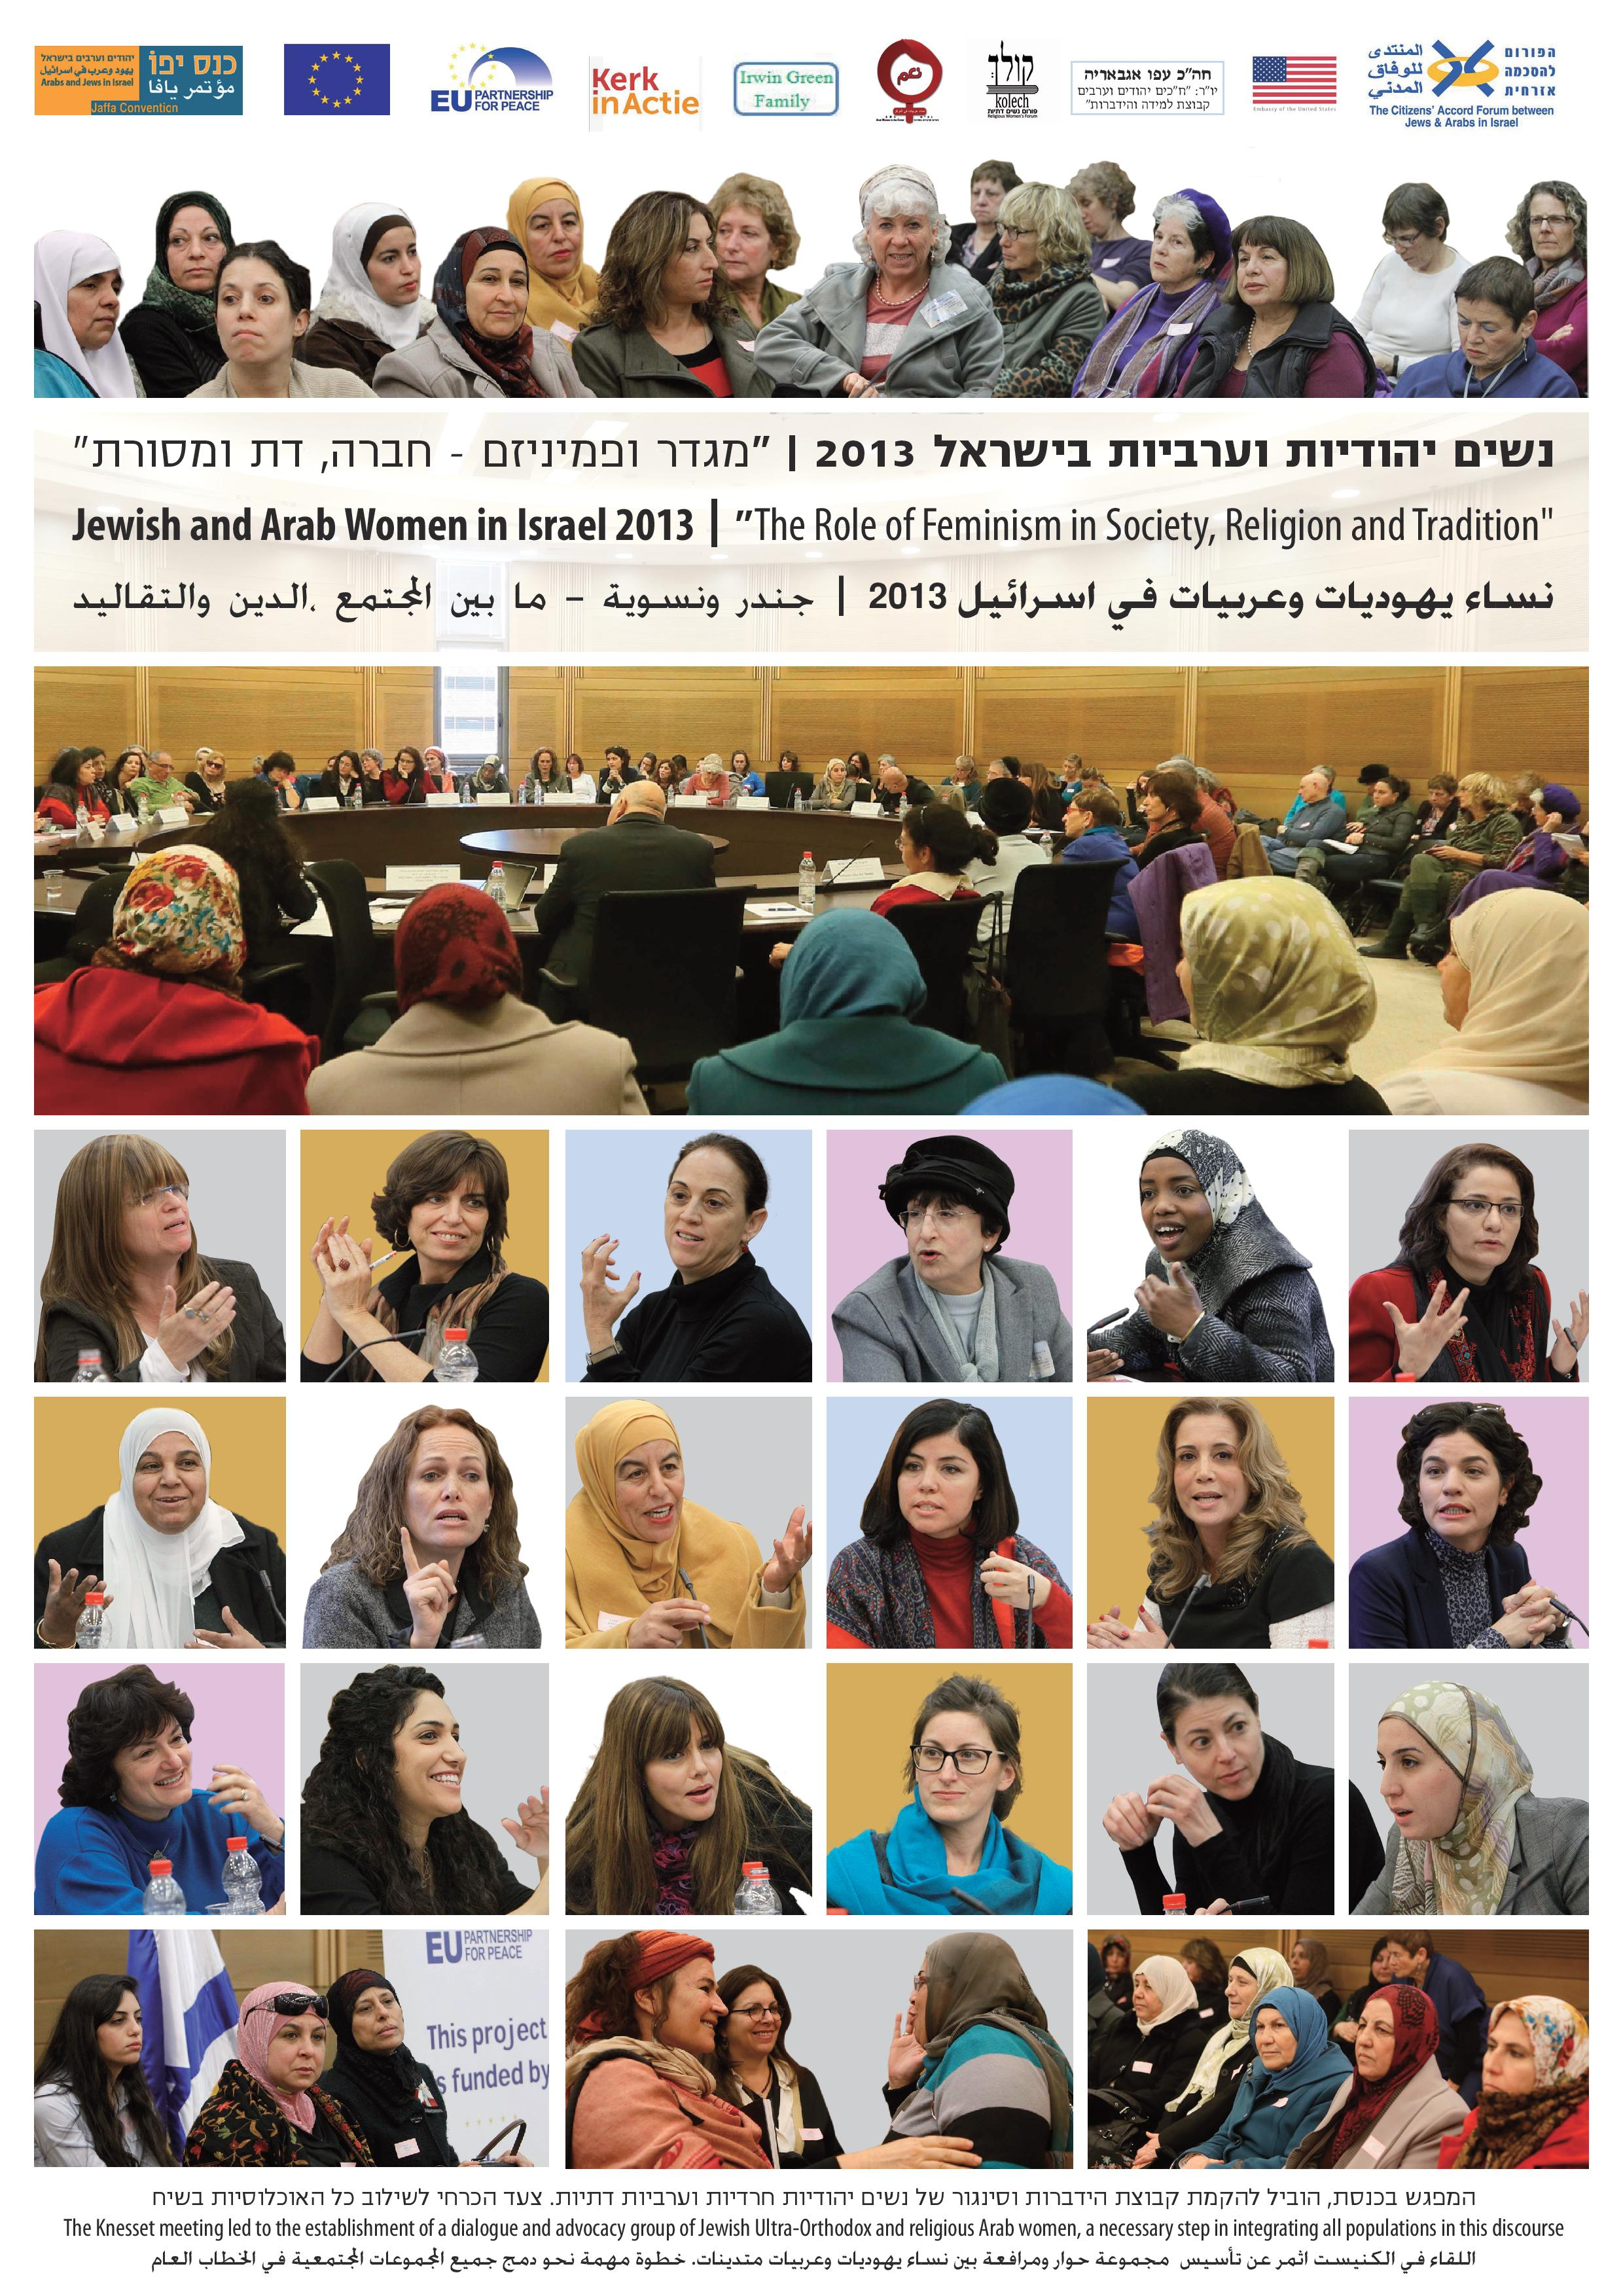 2013 The Role of Feminism in Society, Religion and Tradition.jpg